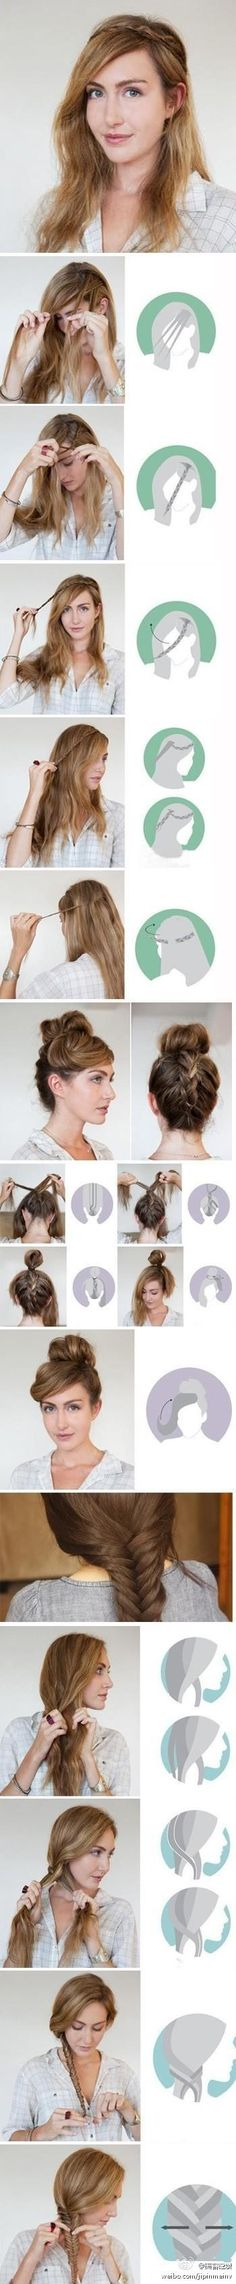 great hair tutorials(: hair styles 7 Ways to Braid Your Hair - DIY Braid & Twist Hairstyles - Hairstyles Weekly Popular Hairstyles, Twist Hairstyles, Long Hairstyles, Pretty Hairstyles, African Hairstyles, Wedding Hairstyles, Simple Hairstyles, Homecoming Hairstyles, Modern Hairstyles